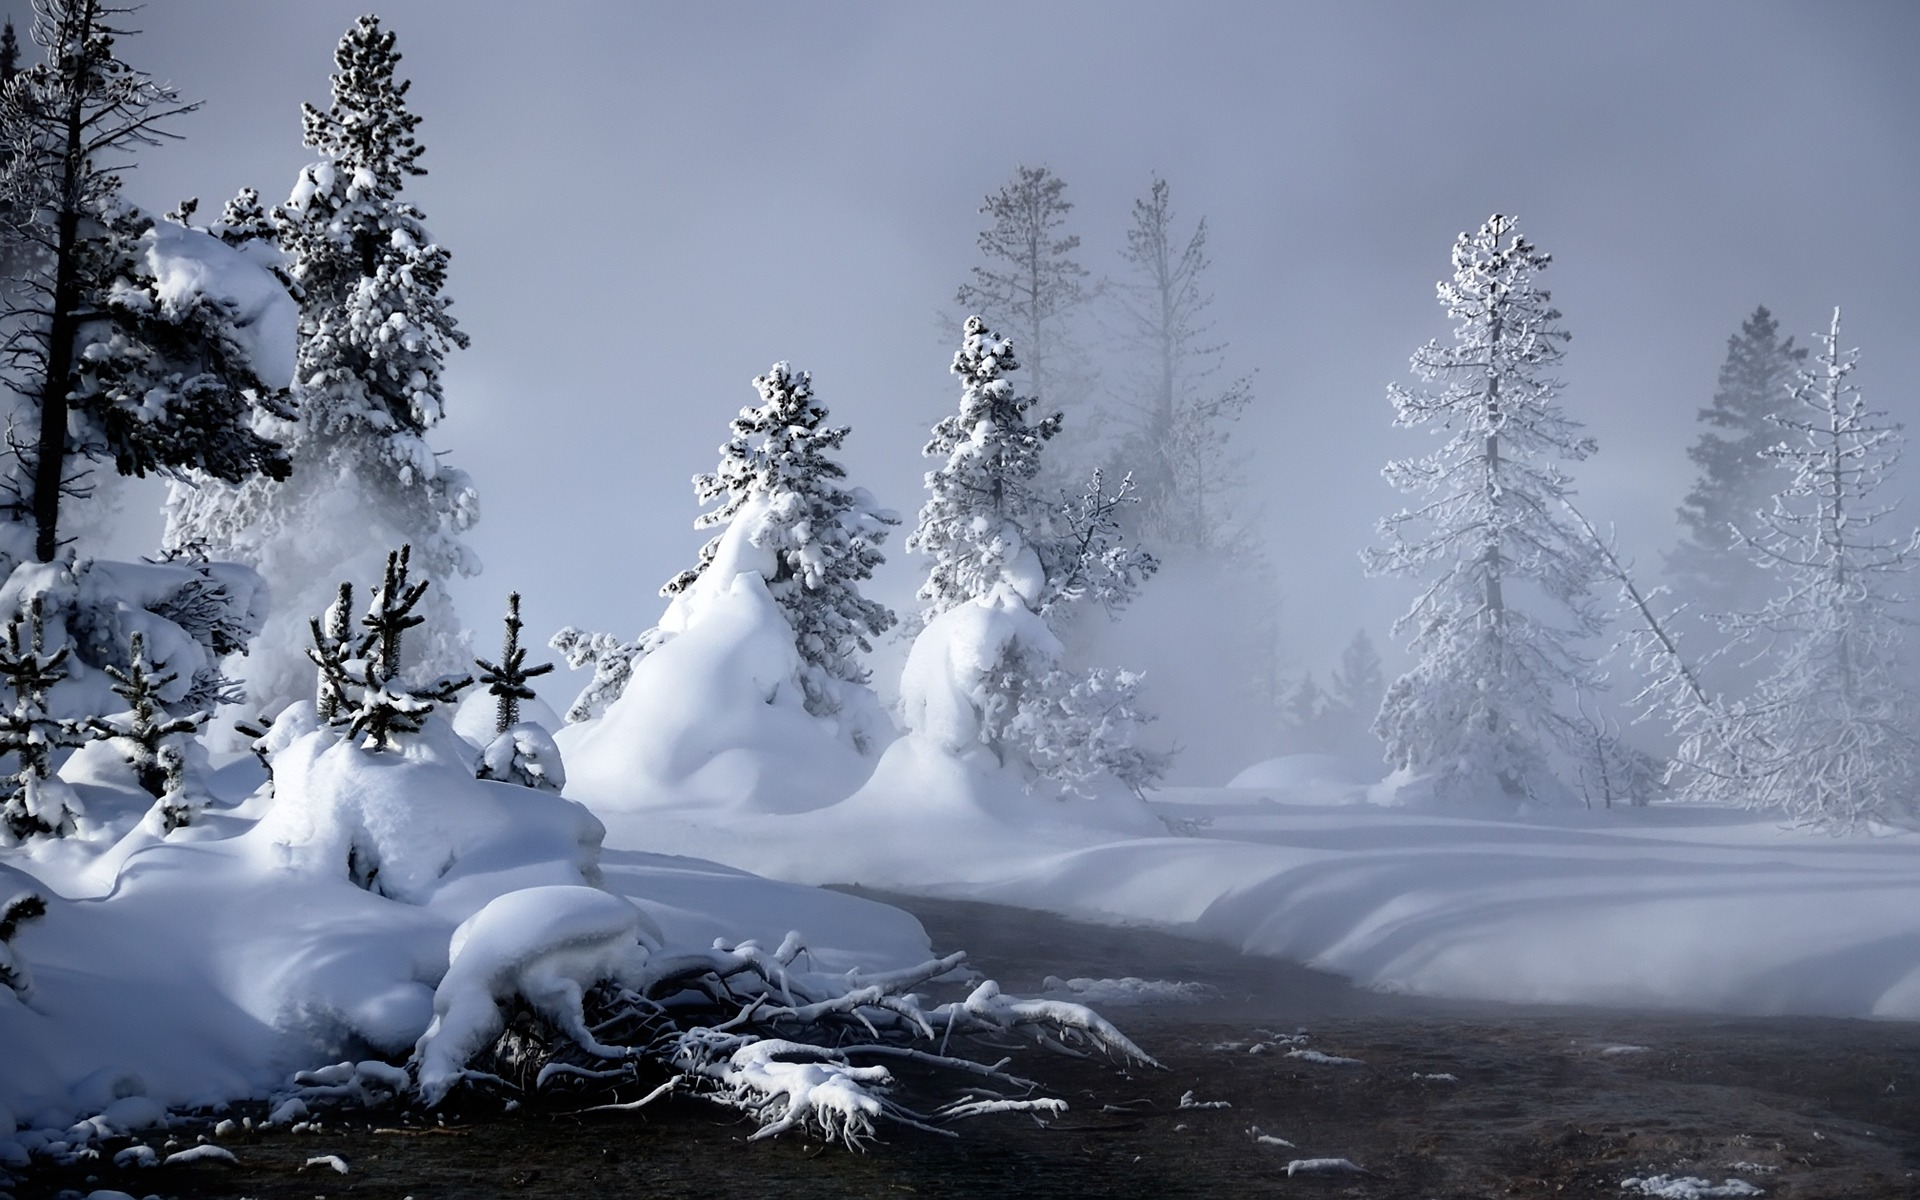 Winter Nature HD Wallpaper For Iphone